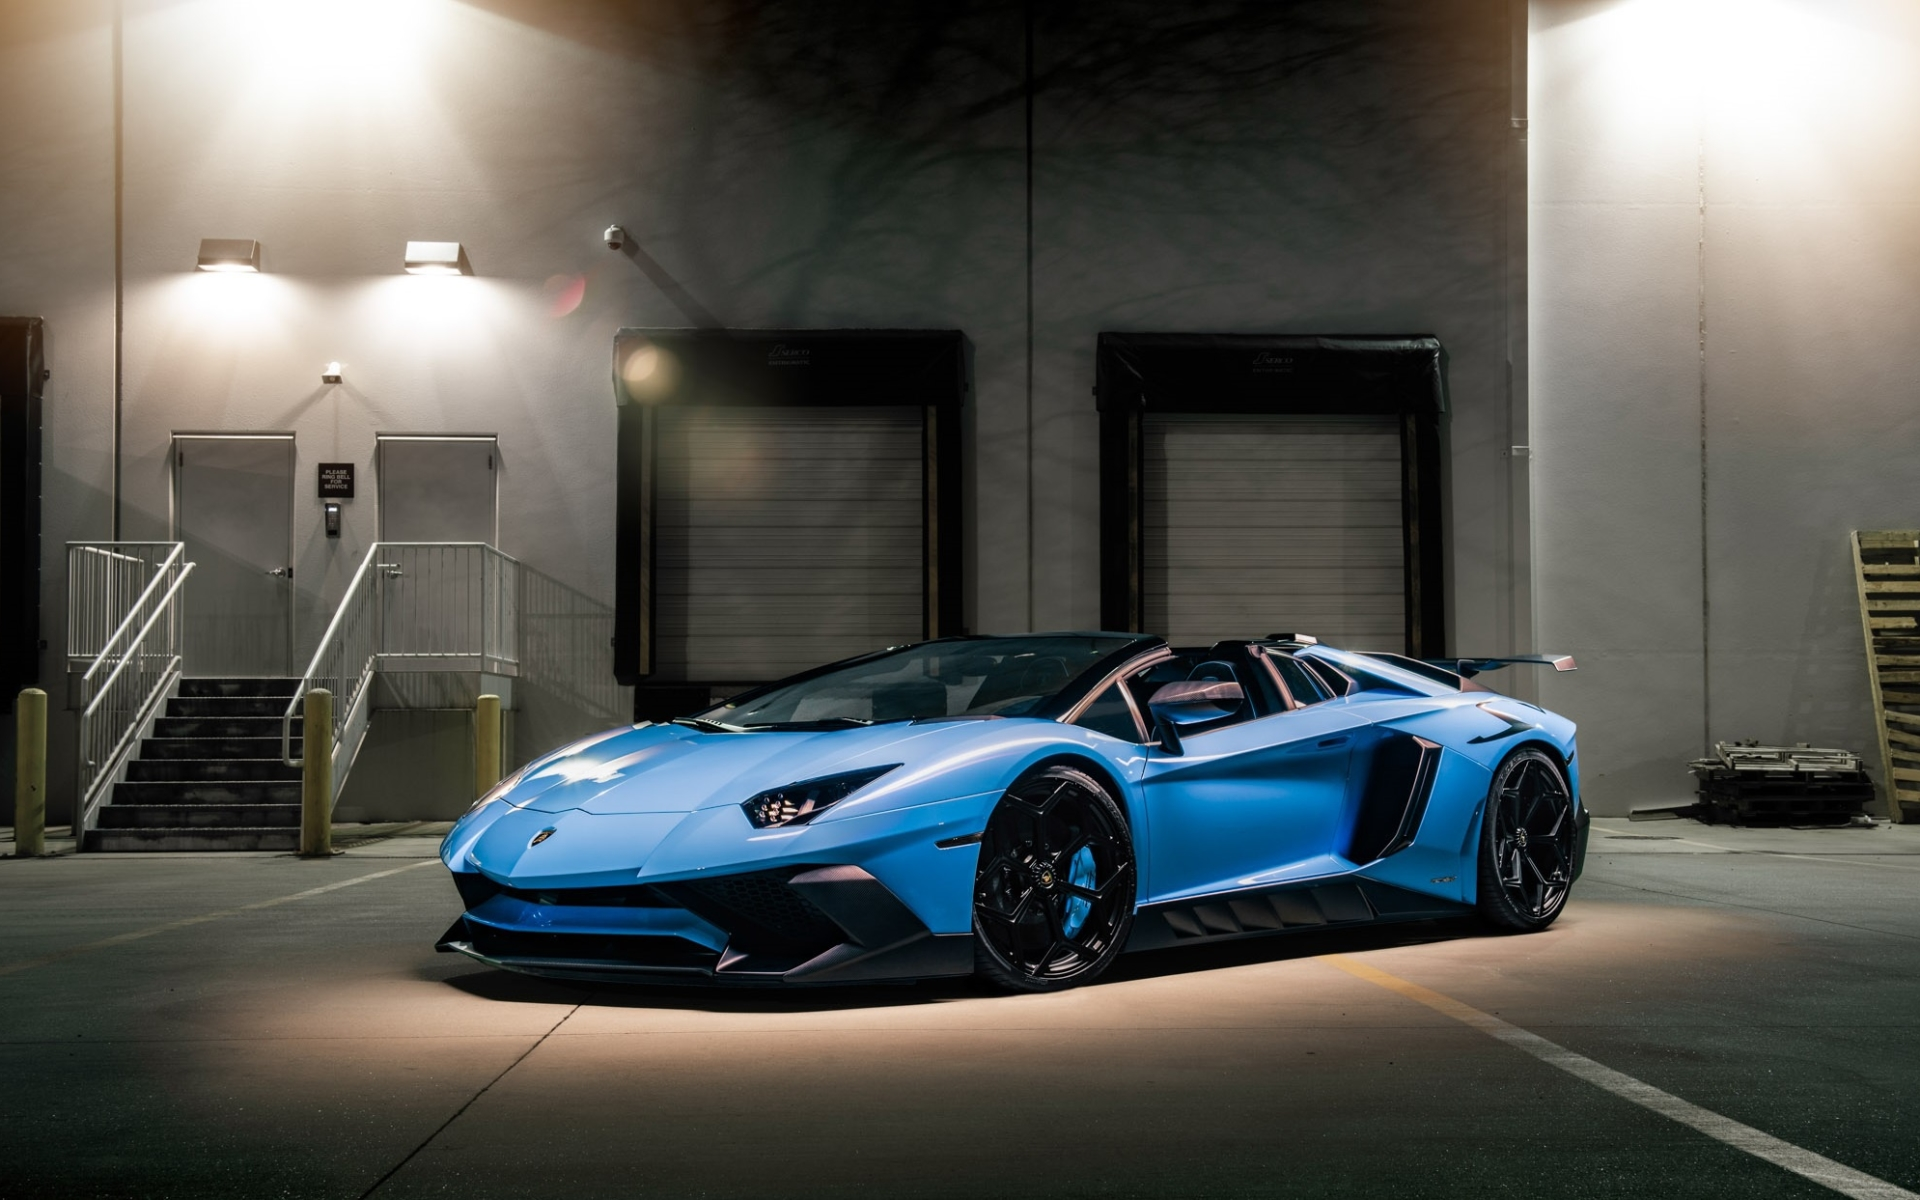 Wallpaper Of Blue Car Lamborghini Aventador Background Hd Image